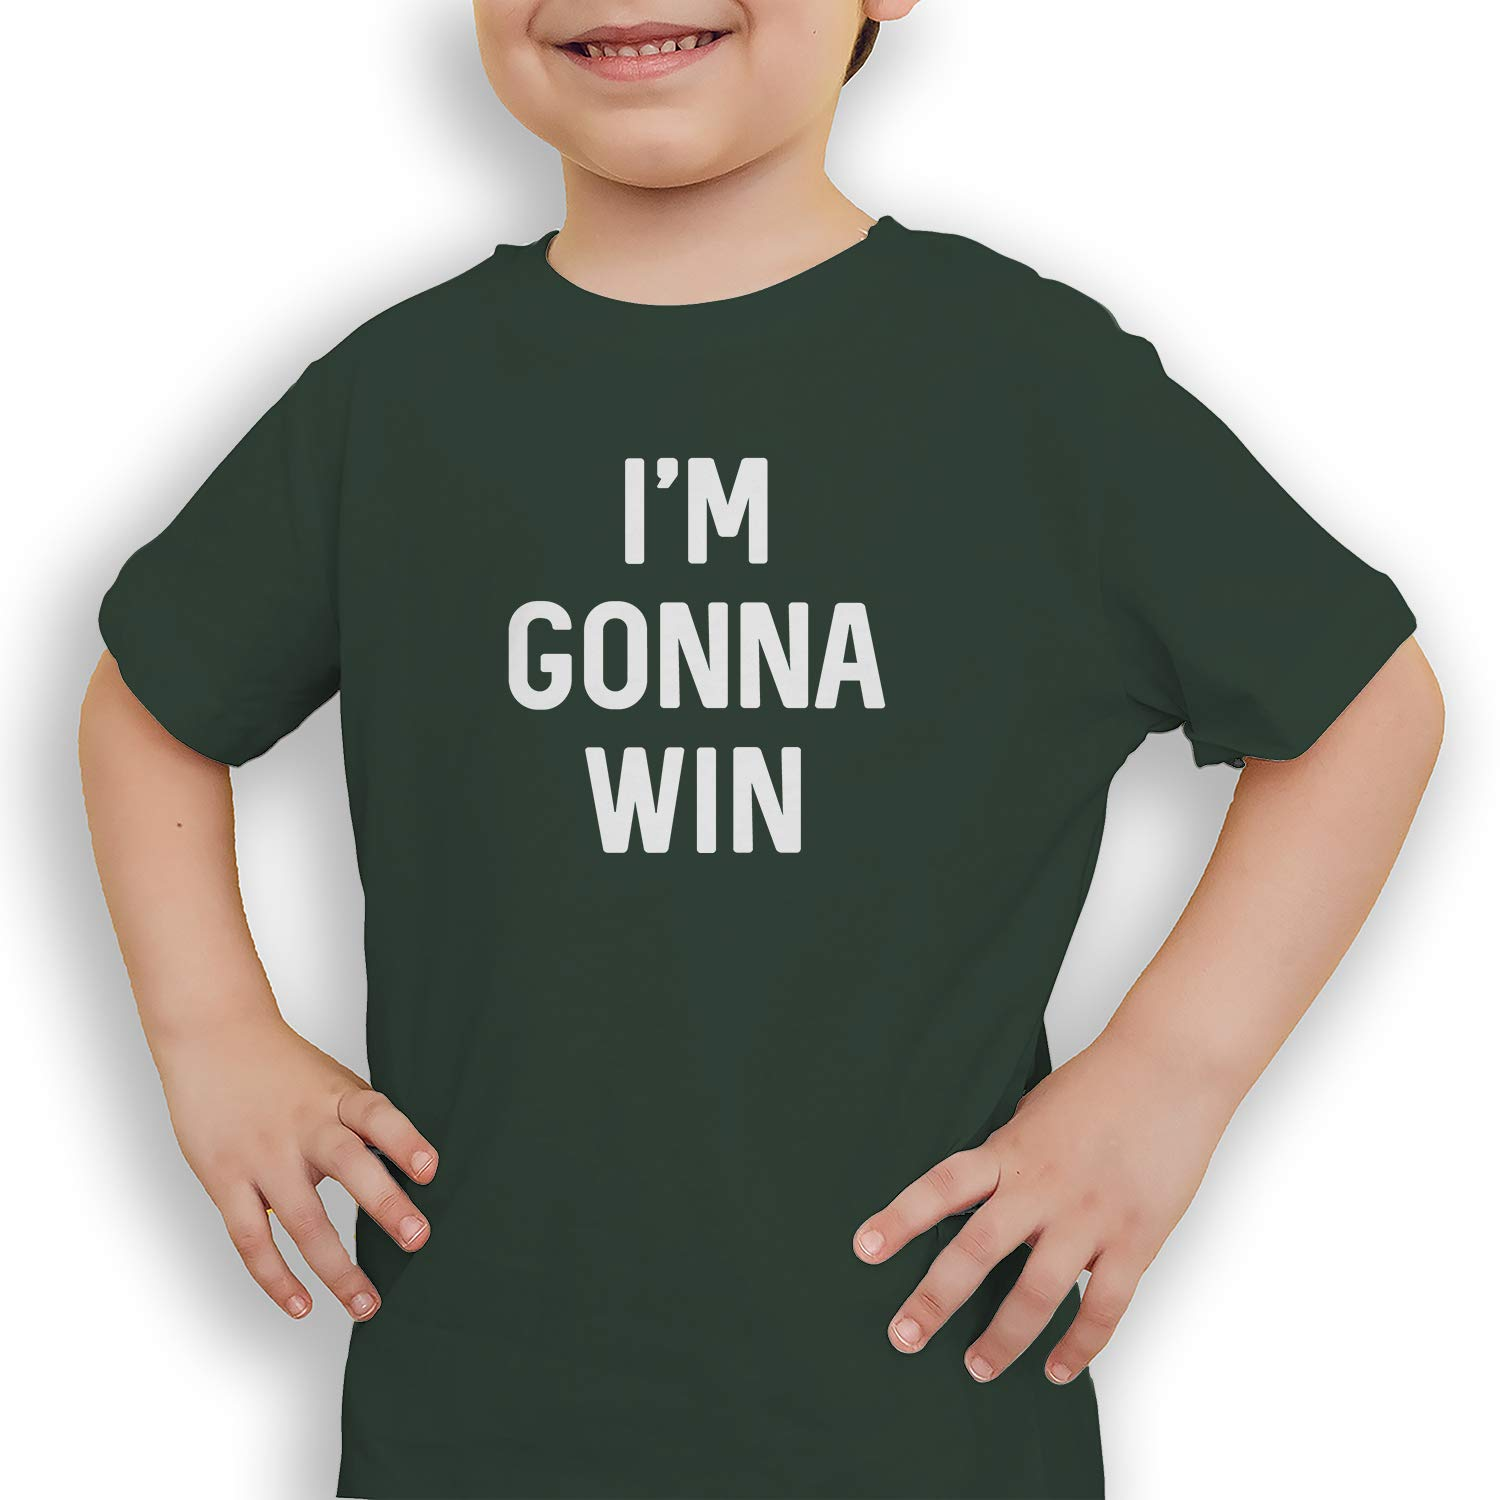 Zatelo Iam Gonna Win T-Shirt